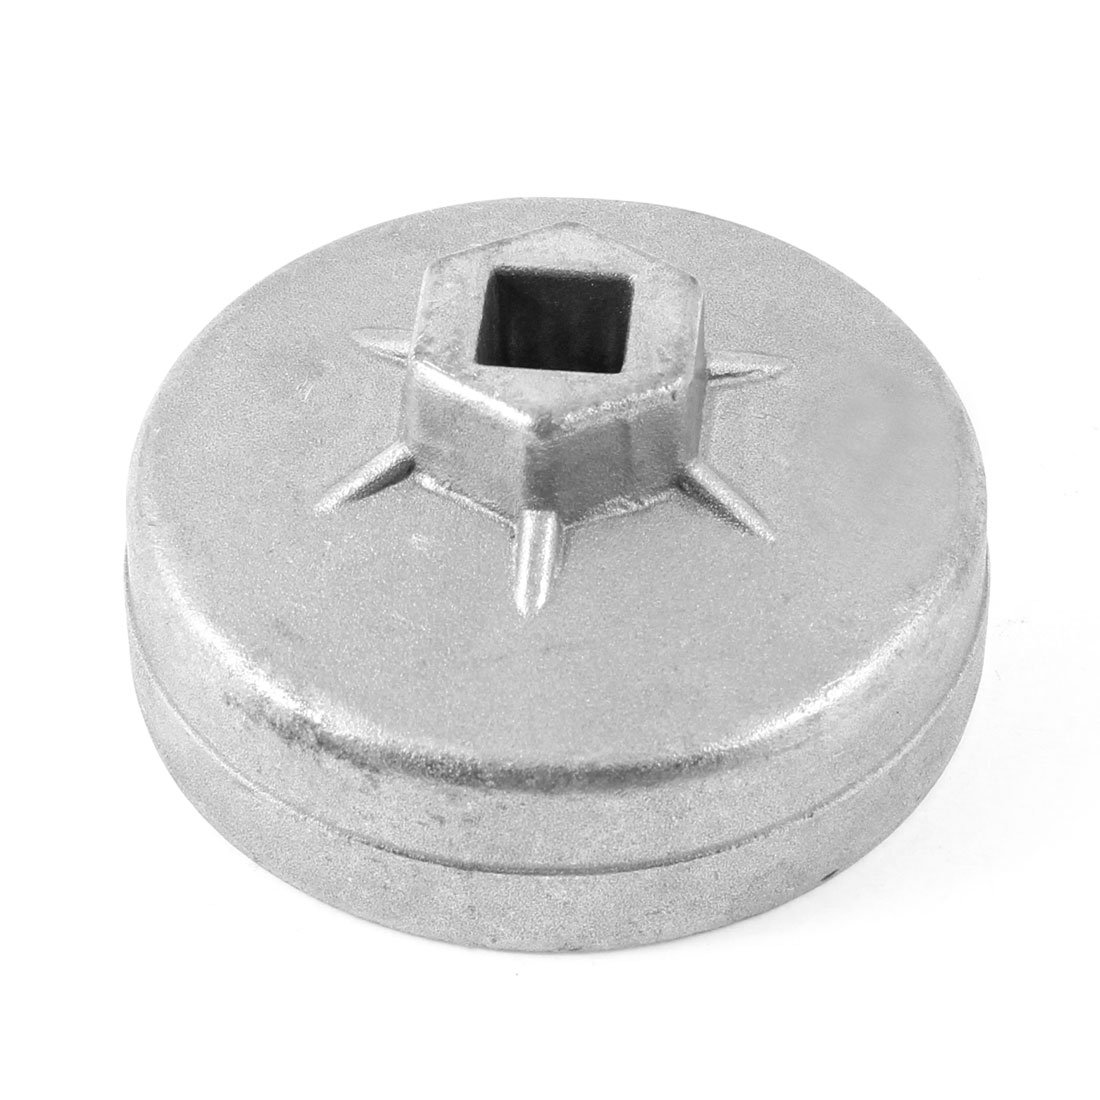 uxcell Auto Car 13mm Drive 75mm 14 Flutes Oil Filter Cap Wrench Socket Cup